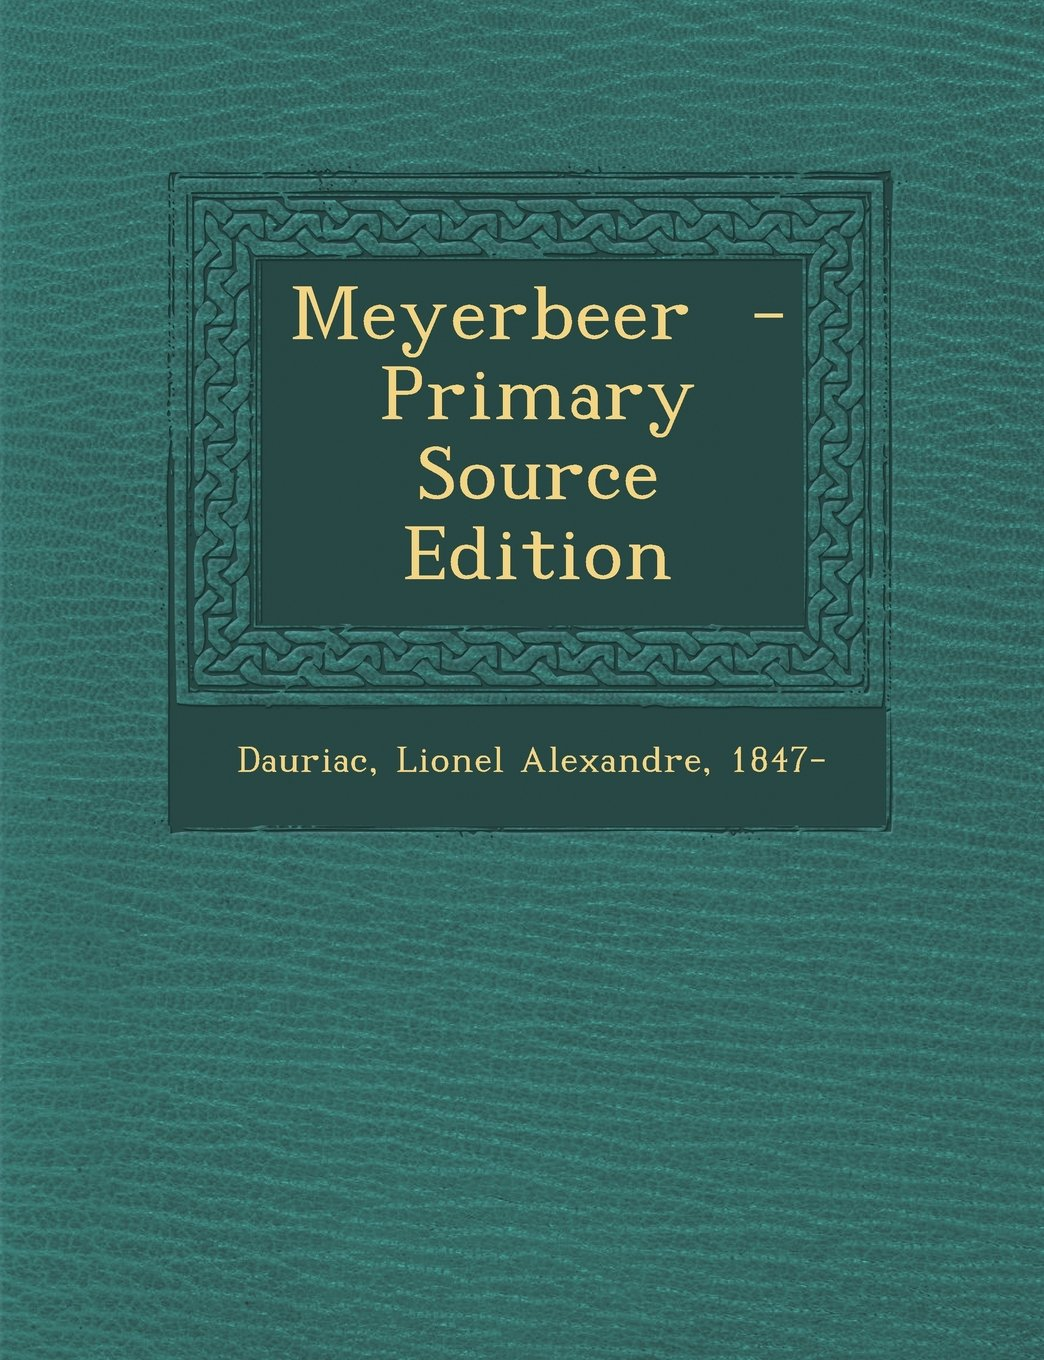 Download Meyerbeer - Primary Source Edition (French Edition) pdf